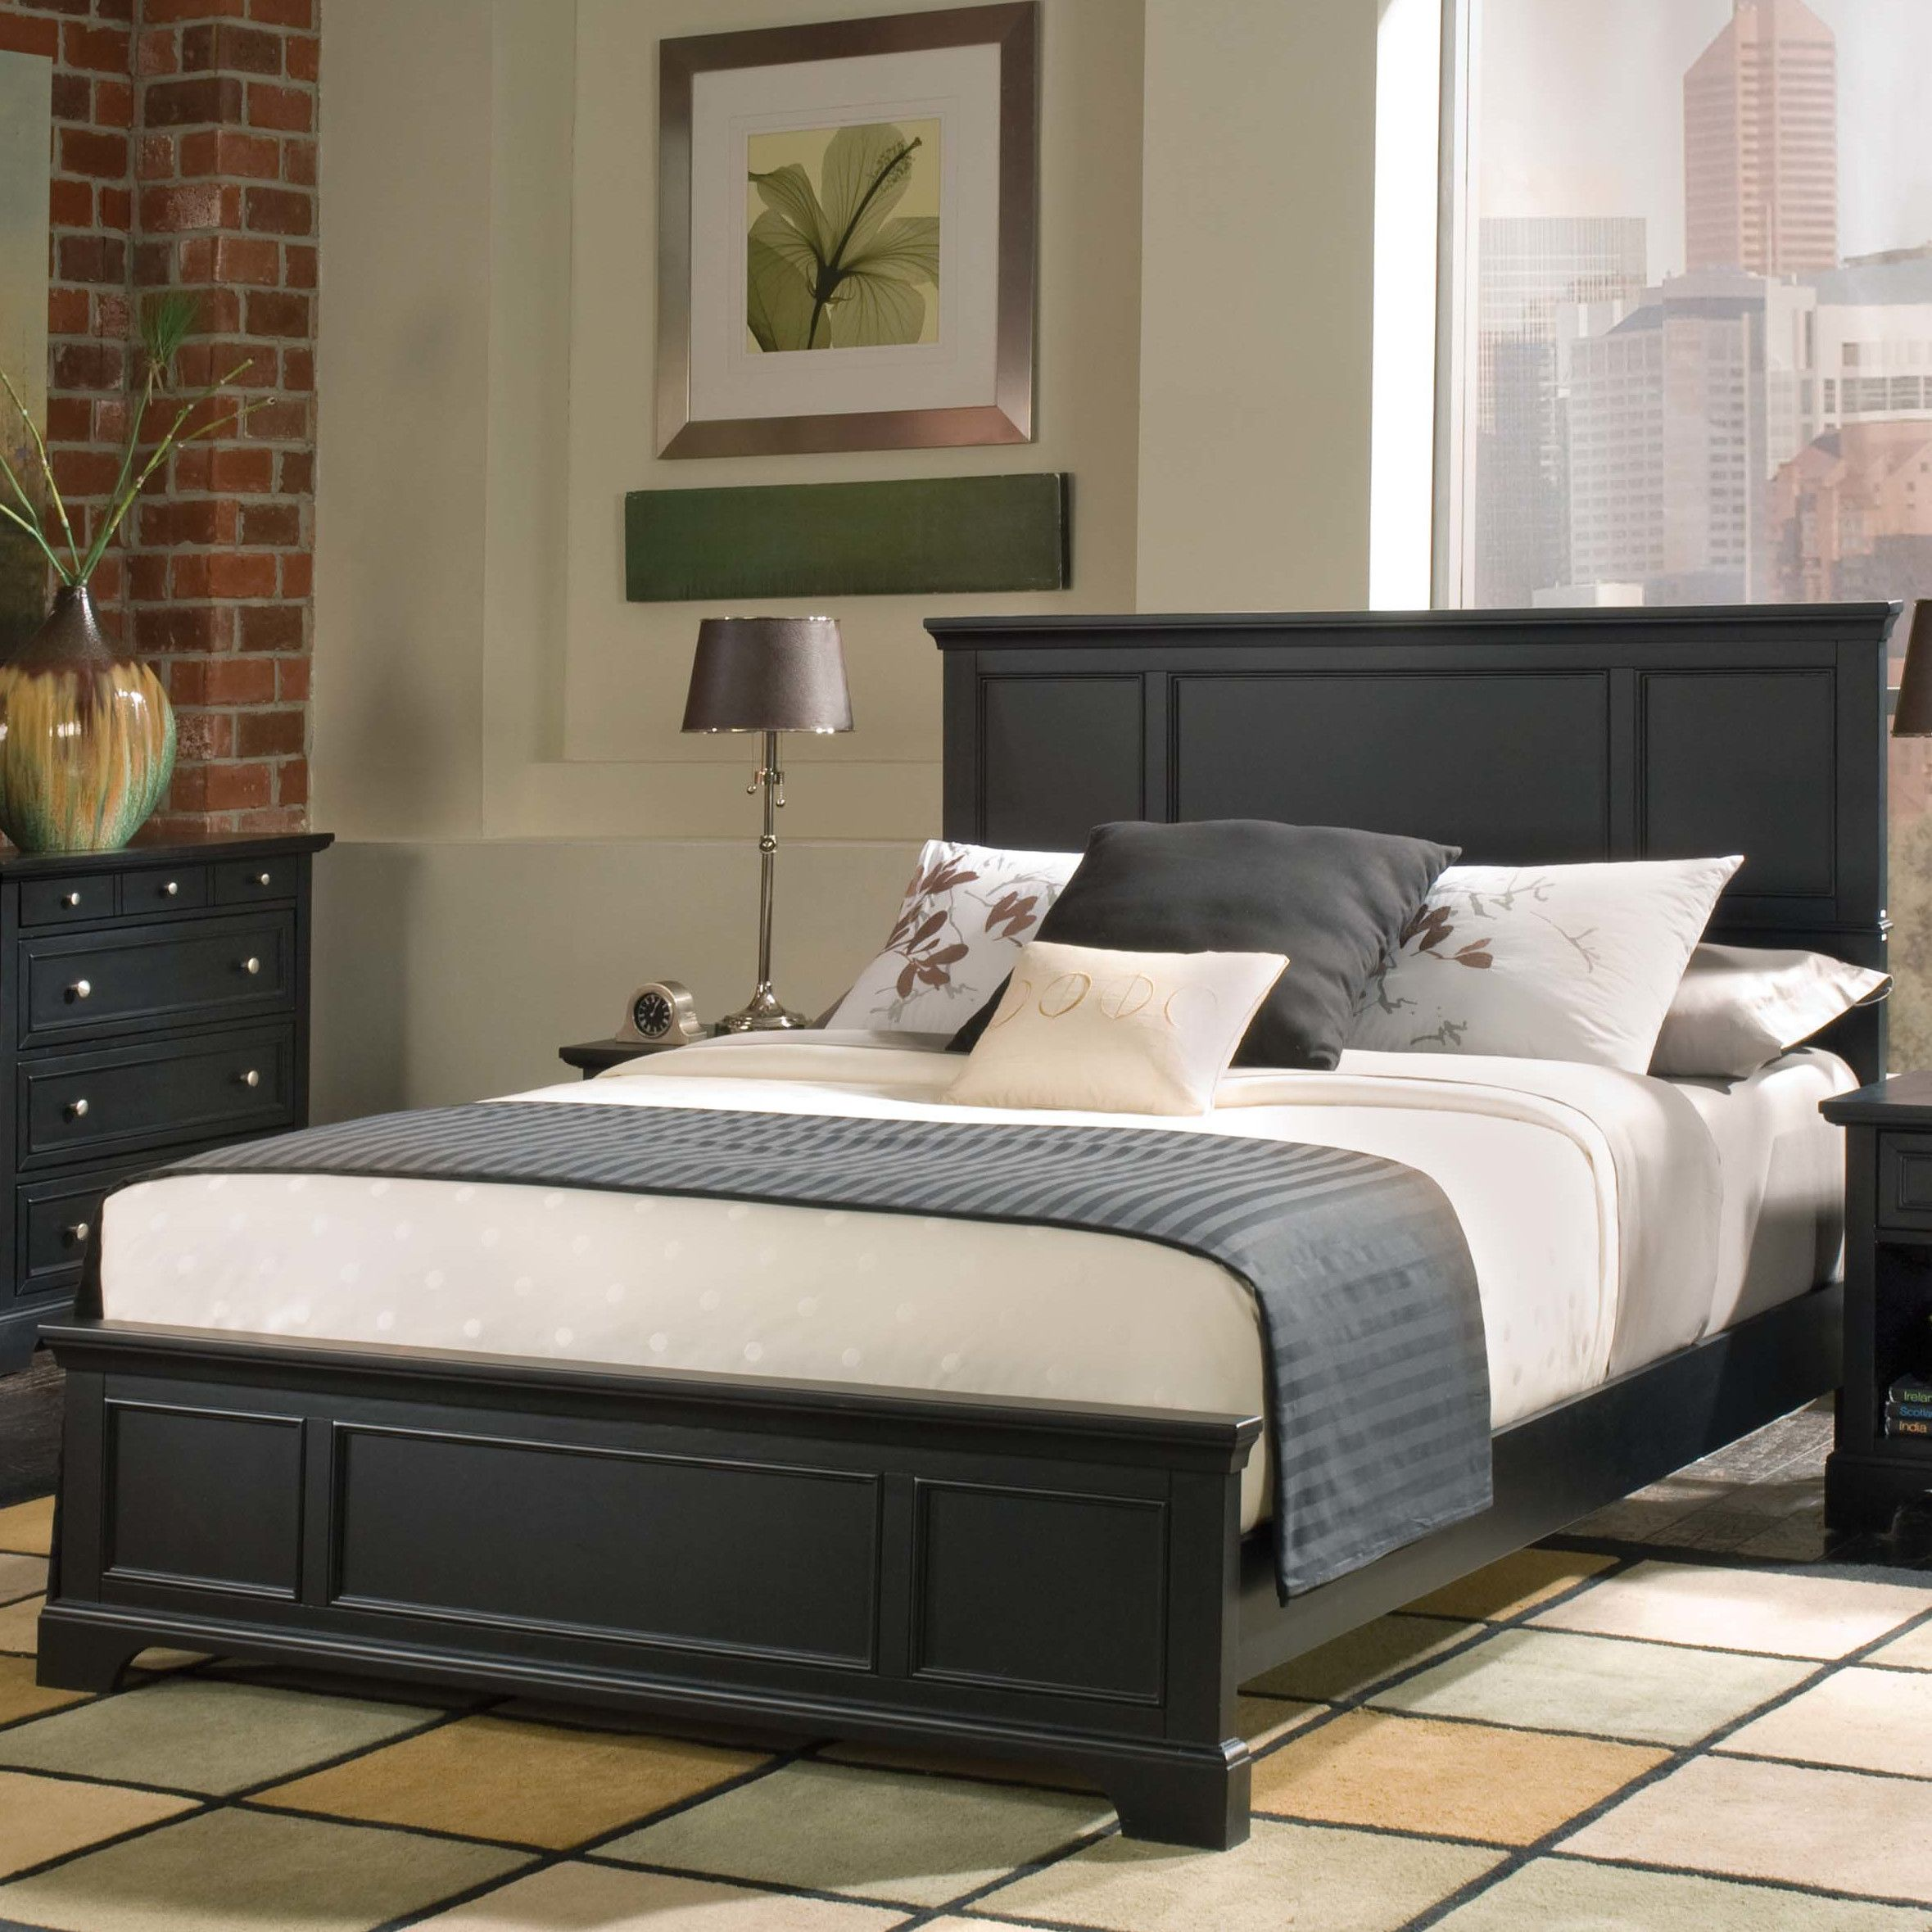 Shop Wayfair.ca for Beds to match every style and budget